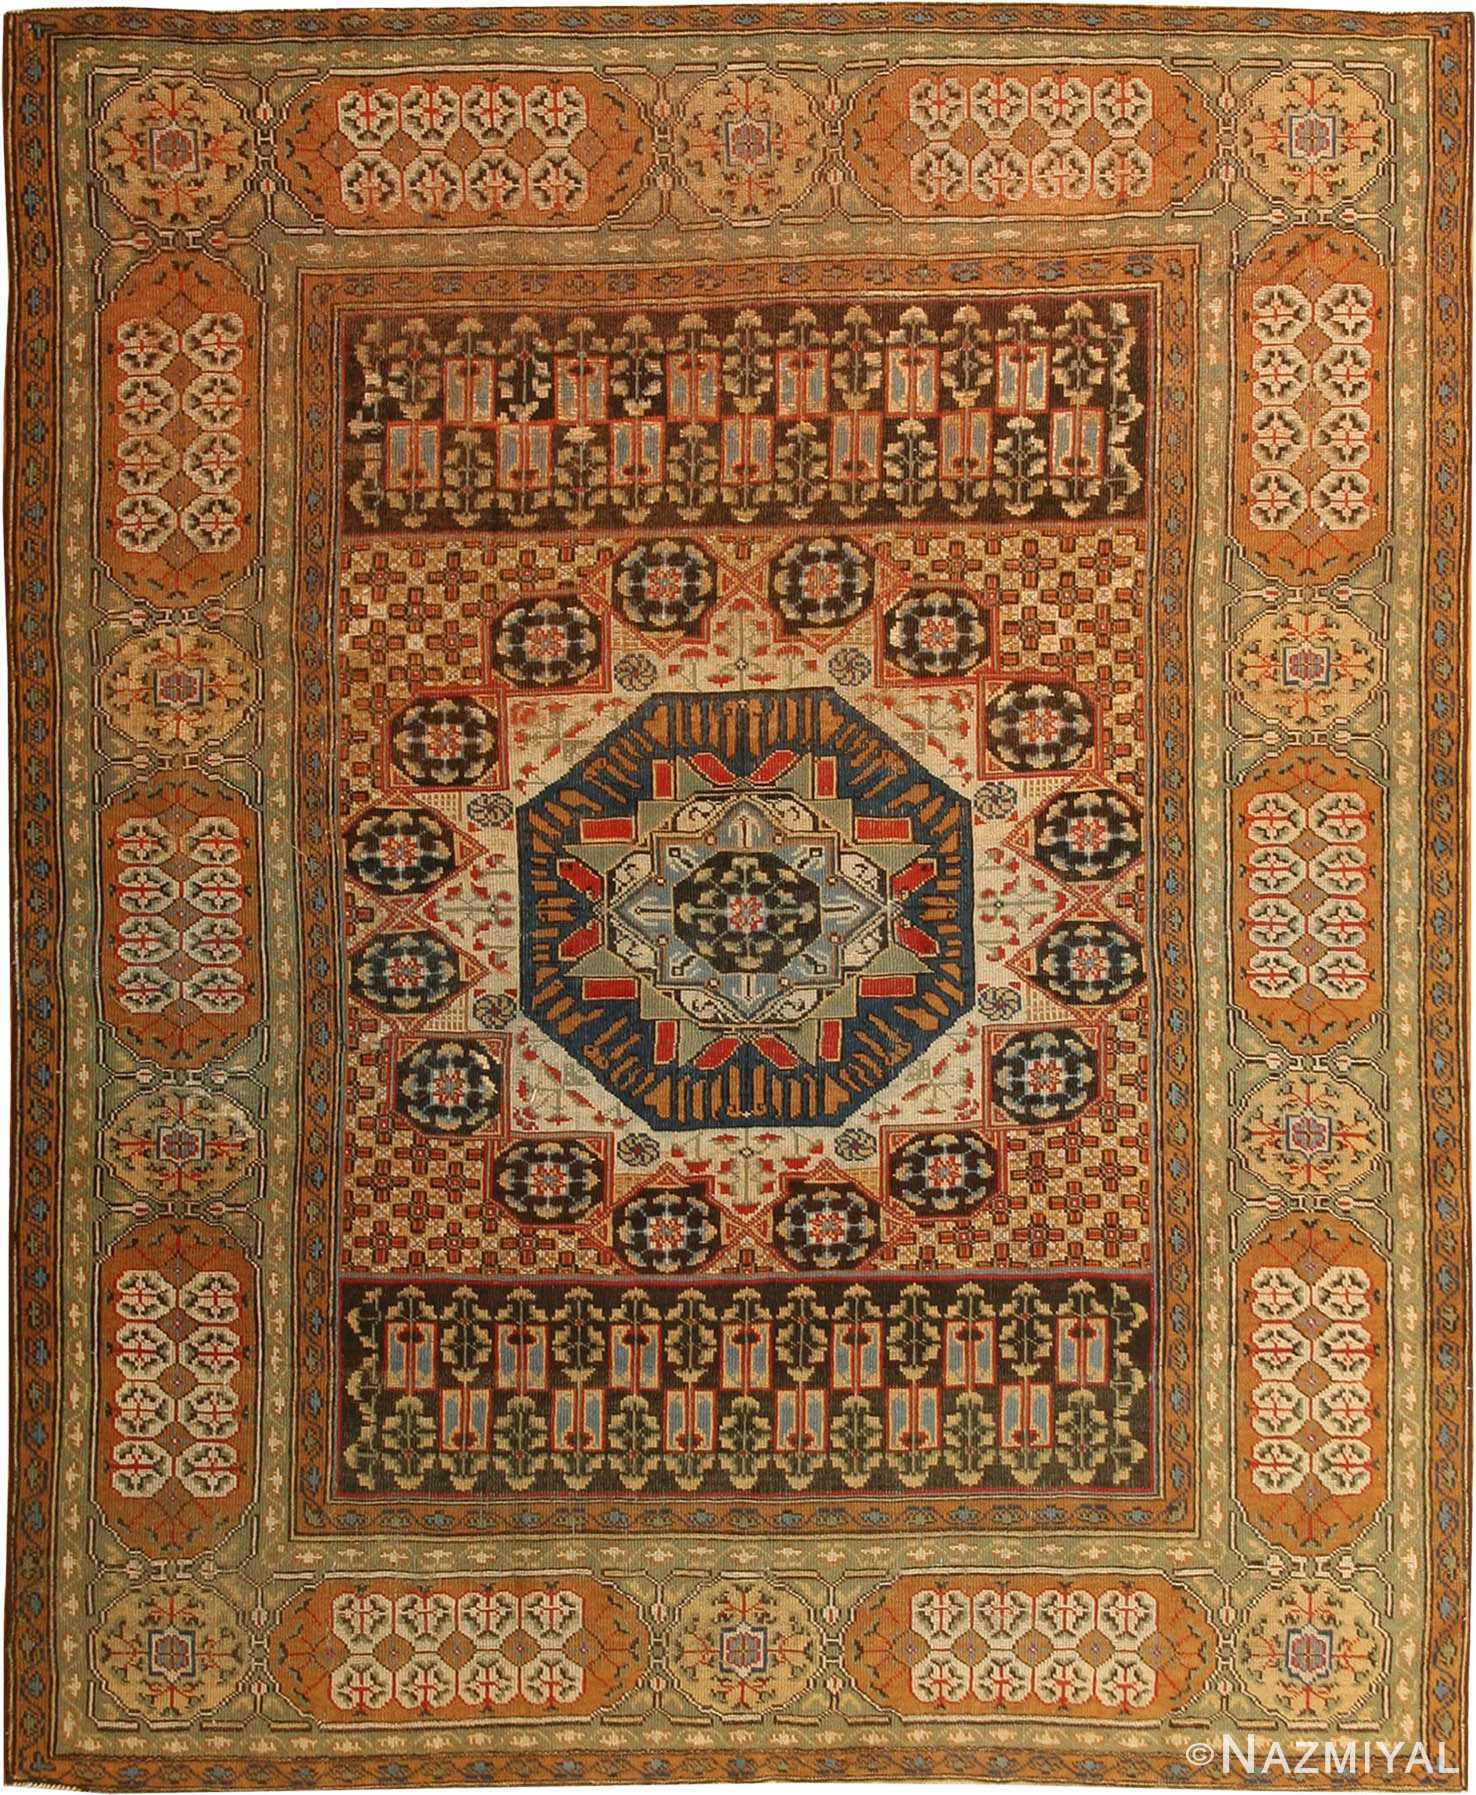 Antique Turkish Tuduc Mamluk Rug 42865 By Nazmiyal NYC